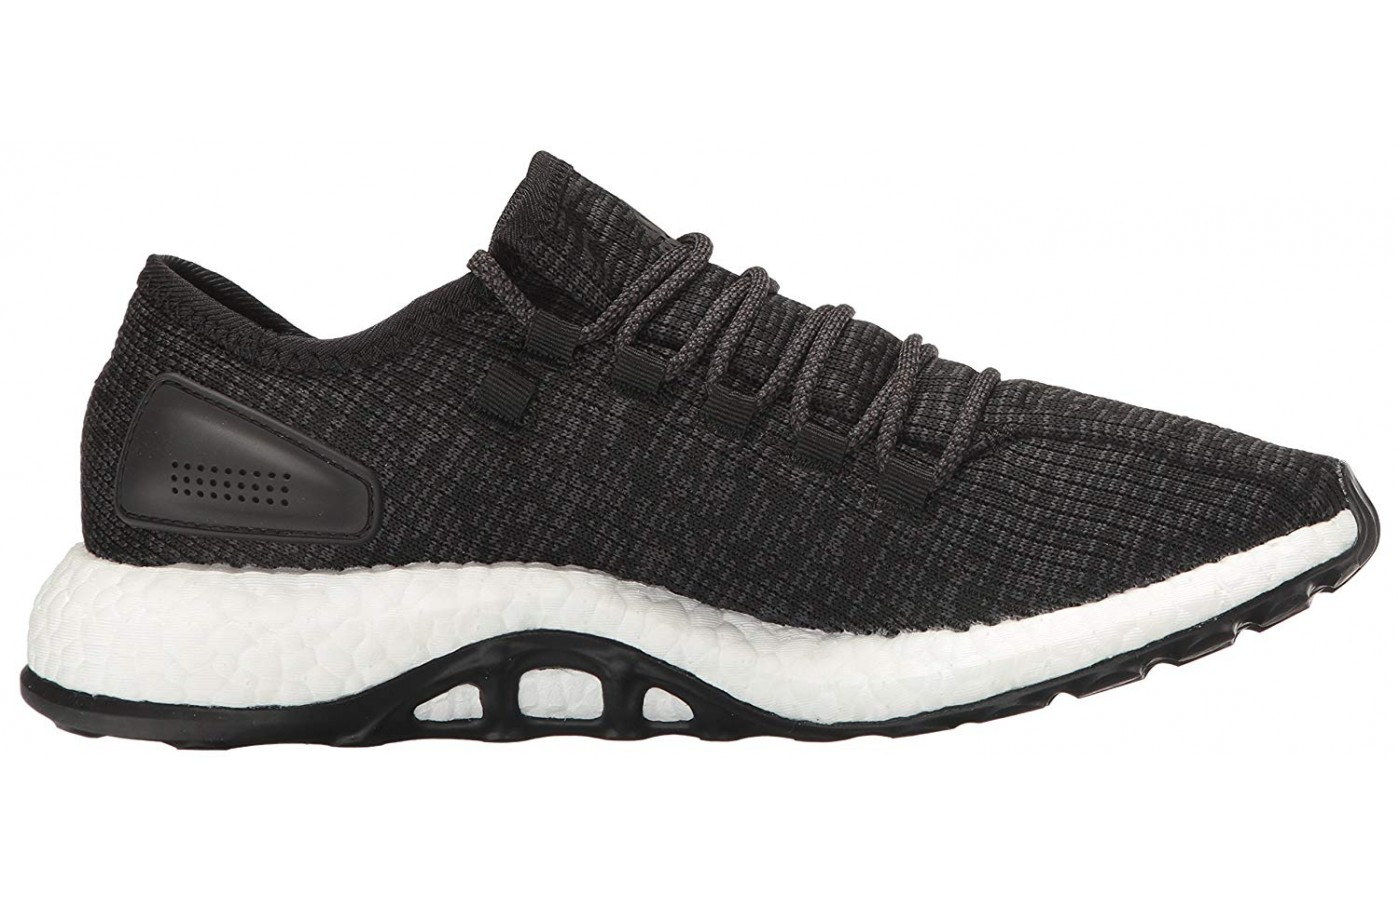 The raised outsole of the Adidas Pure Boost